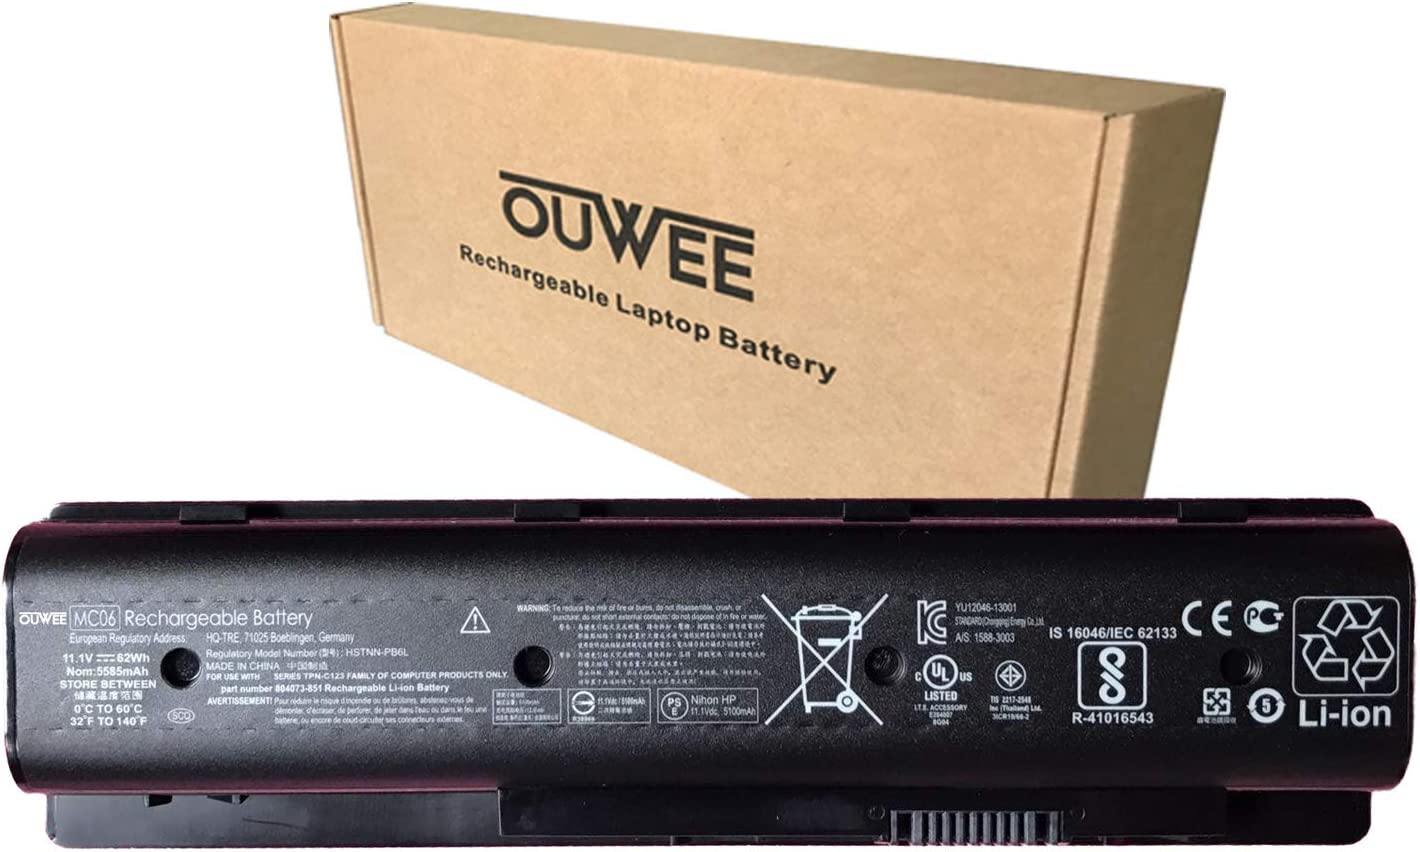 OUWEE MC06 Laptop Battery Compatible with Hp Envy 15 17 15-ae100 17-n000 TPN-C123 15-ae100na Series HSTNN-PB6R HSTNN-PB6L MC04 807231-001 804073-851 805095-001 806953-851 11.1V 62Wh 5100mAh